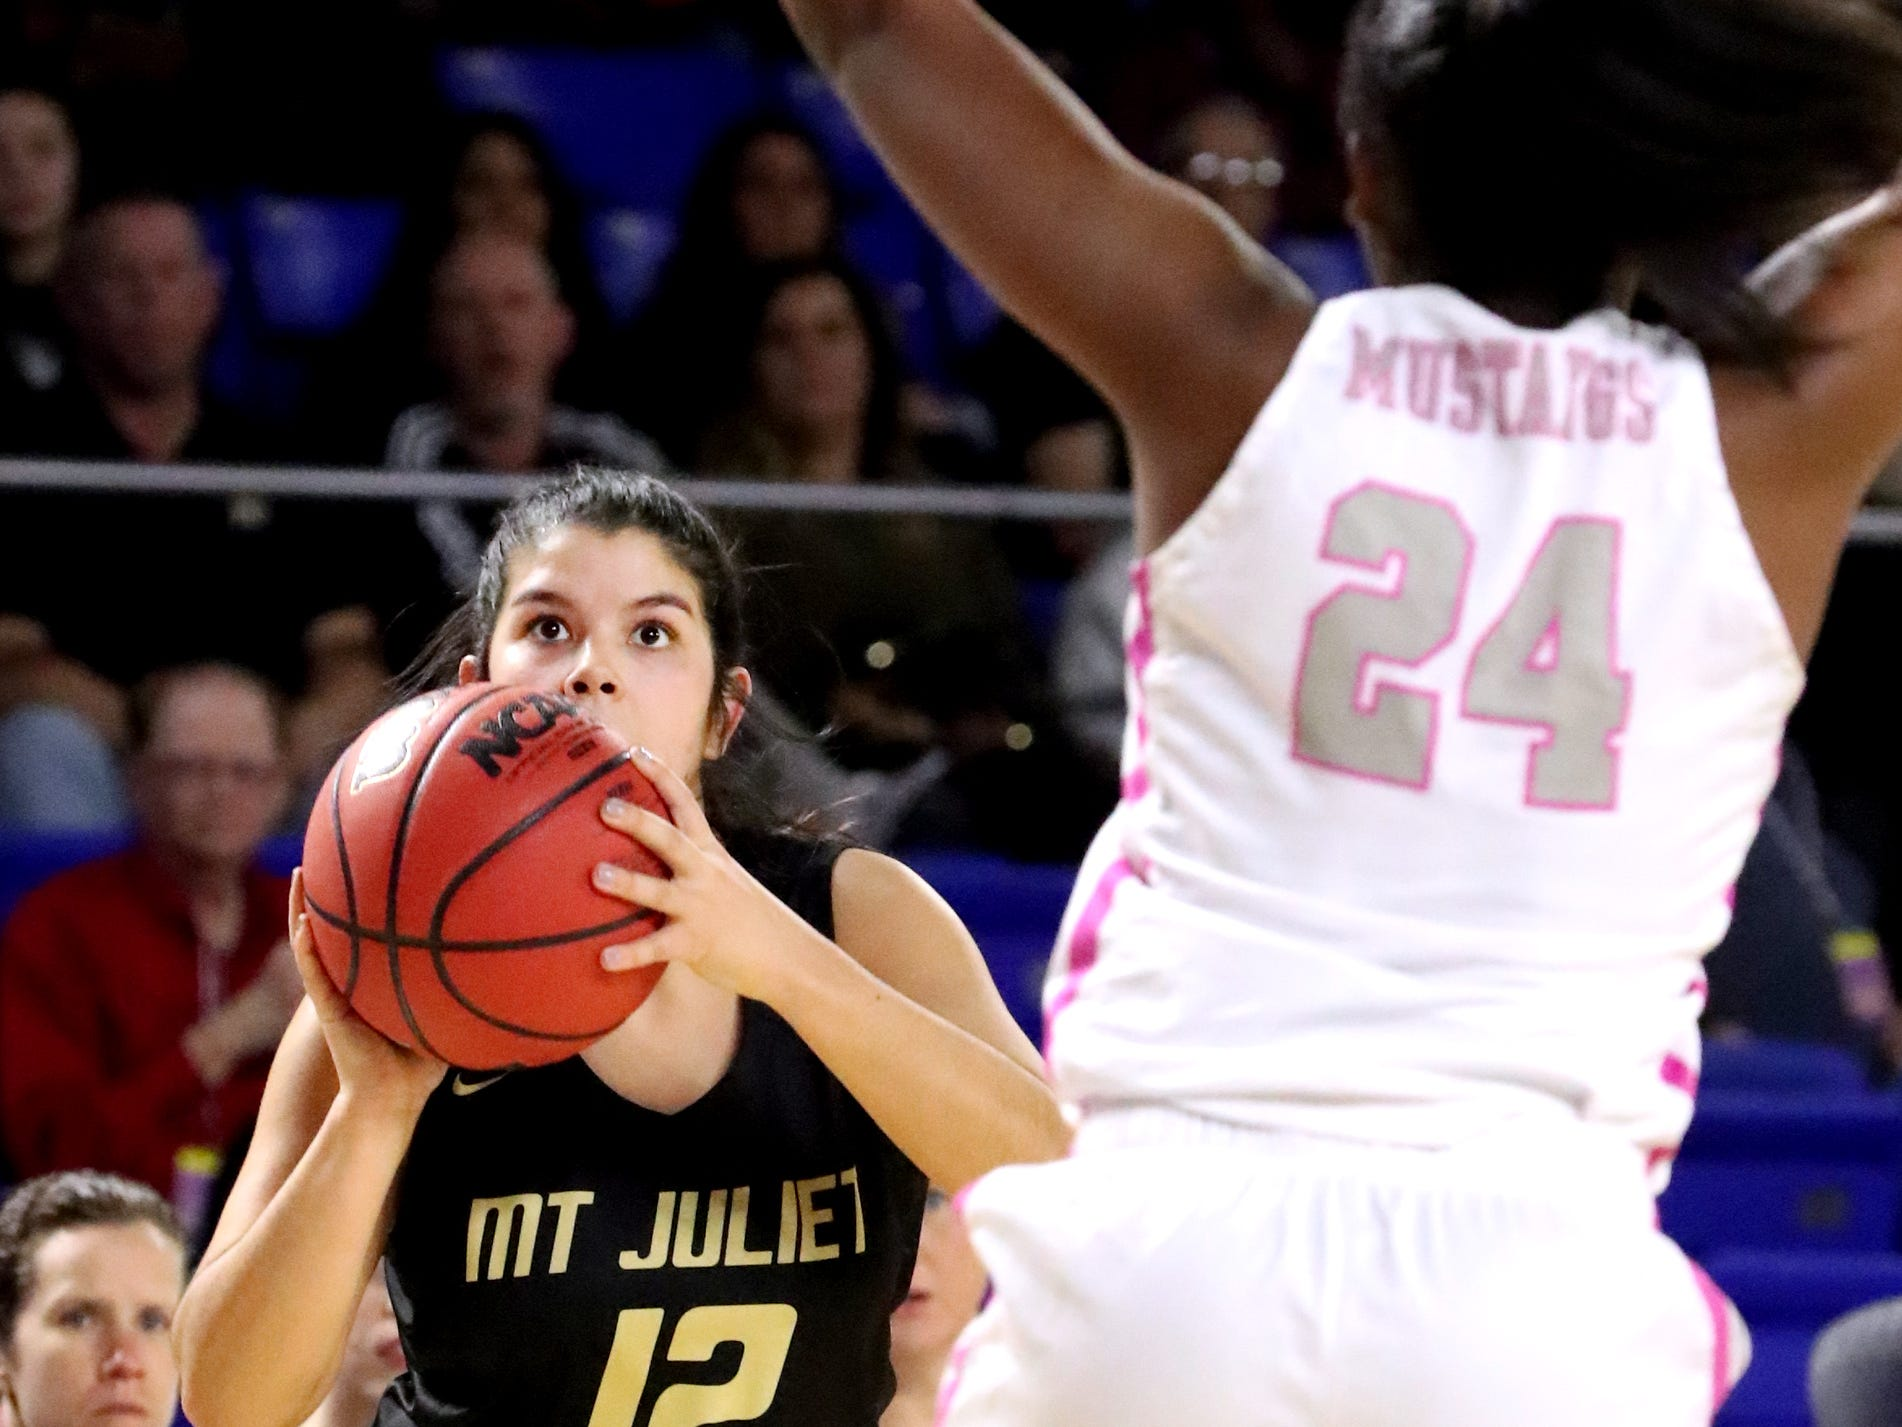 Mt. Juliet's Ryleigh Osborne (12) attempts a three point basket as Houston's Destinee Wells (24) guards her  a during the quarterfinal round of the TSSAA Div. 1 Class AAA Girls State Tournament, on Wednesday, March 6, 2019, at Murphy Center in Murfreesboro, Tenn.